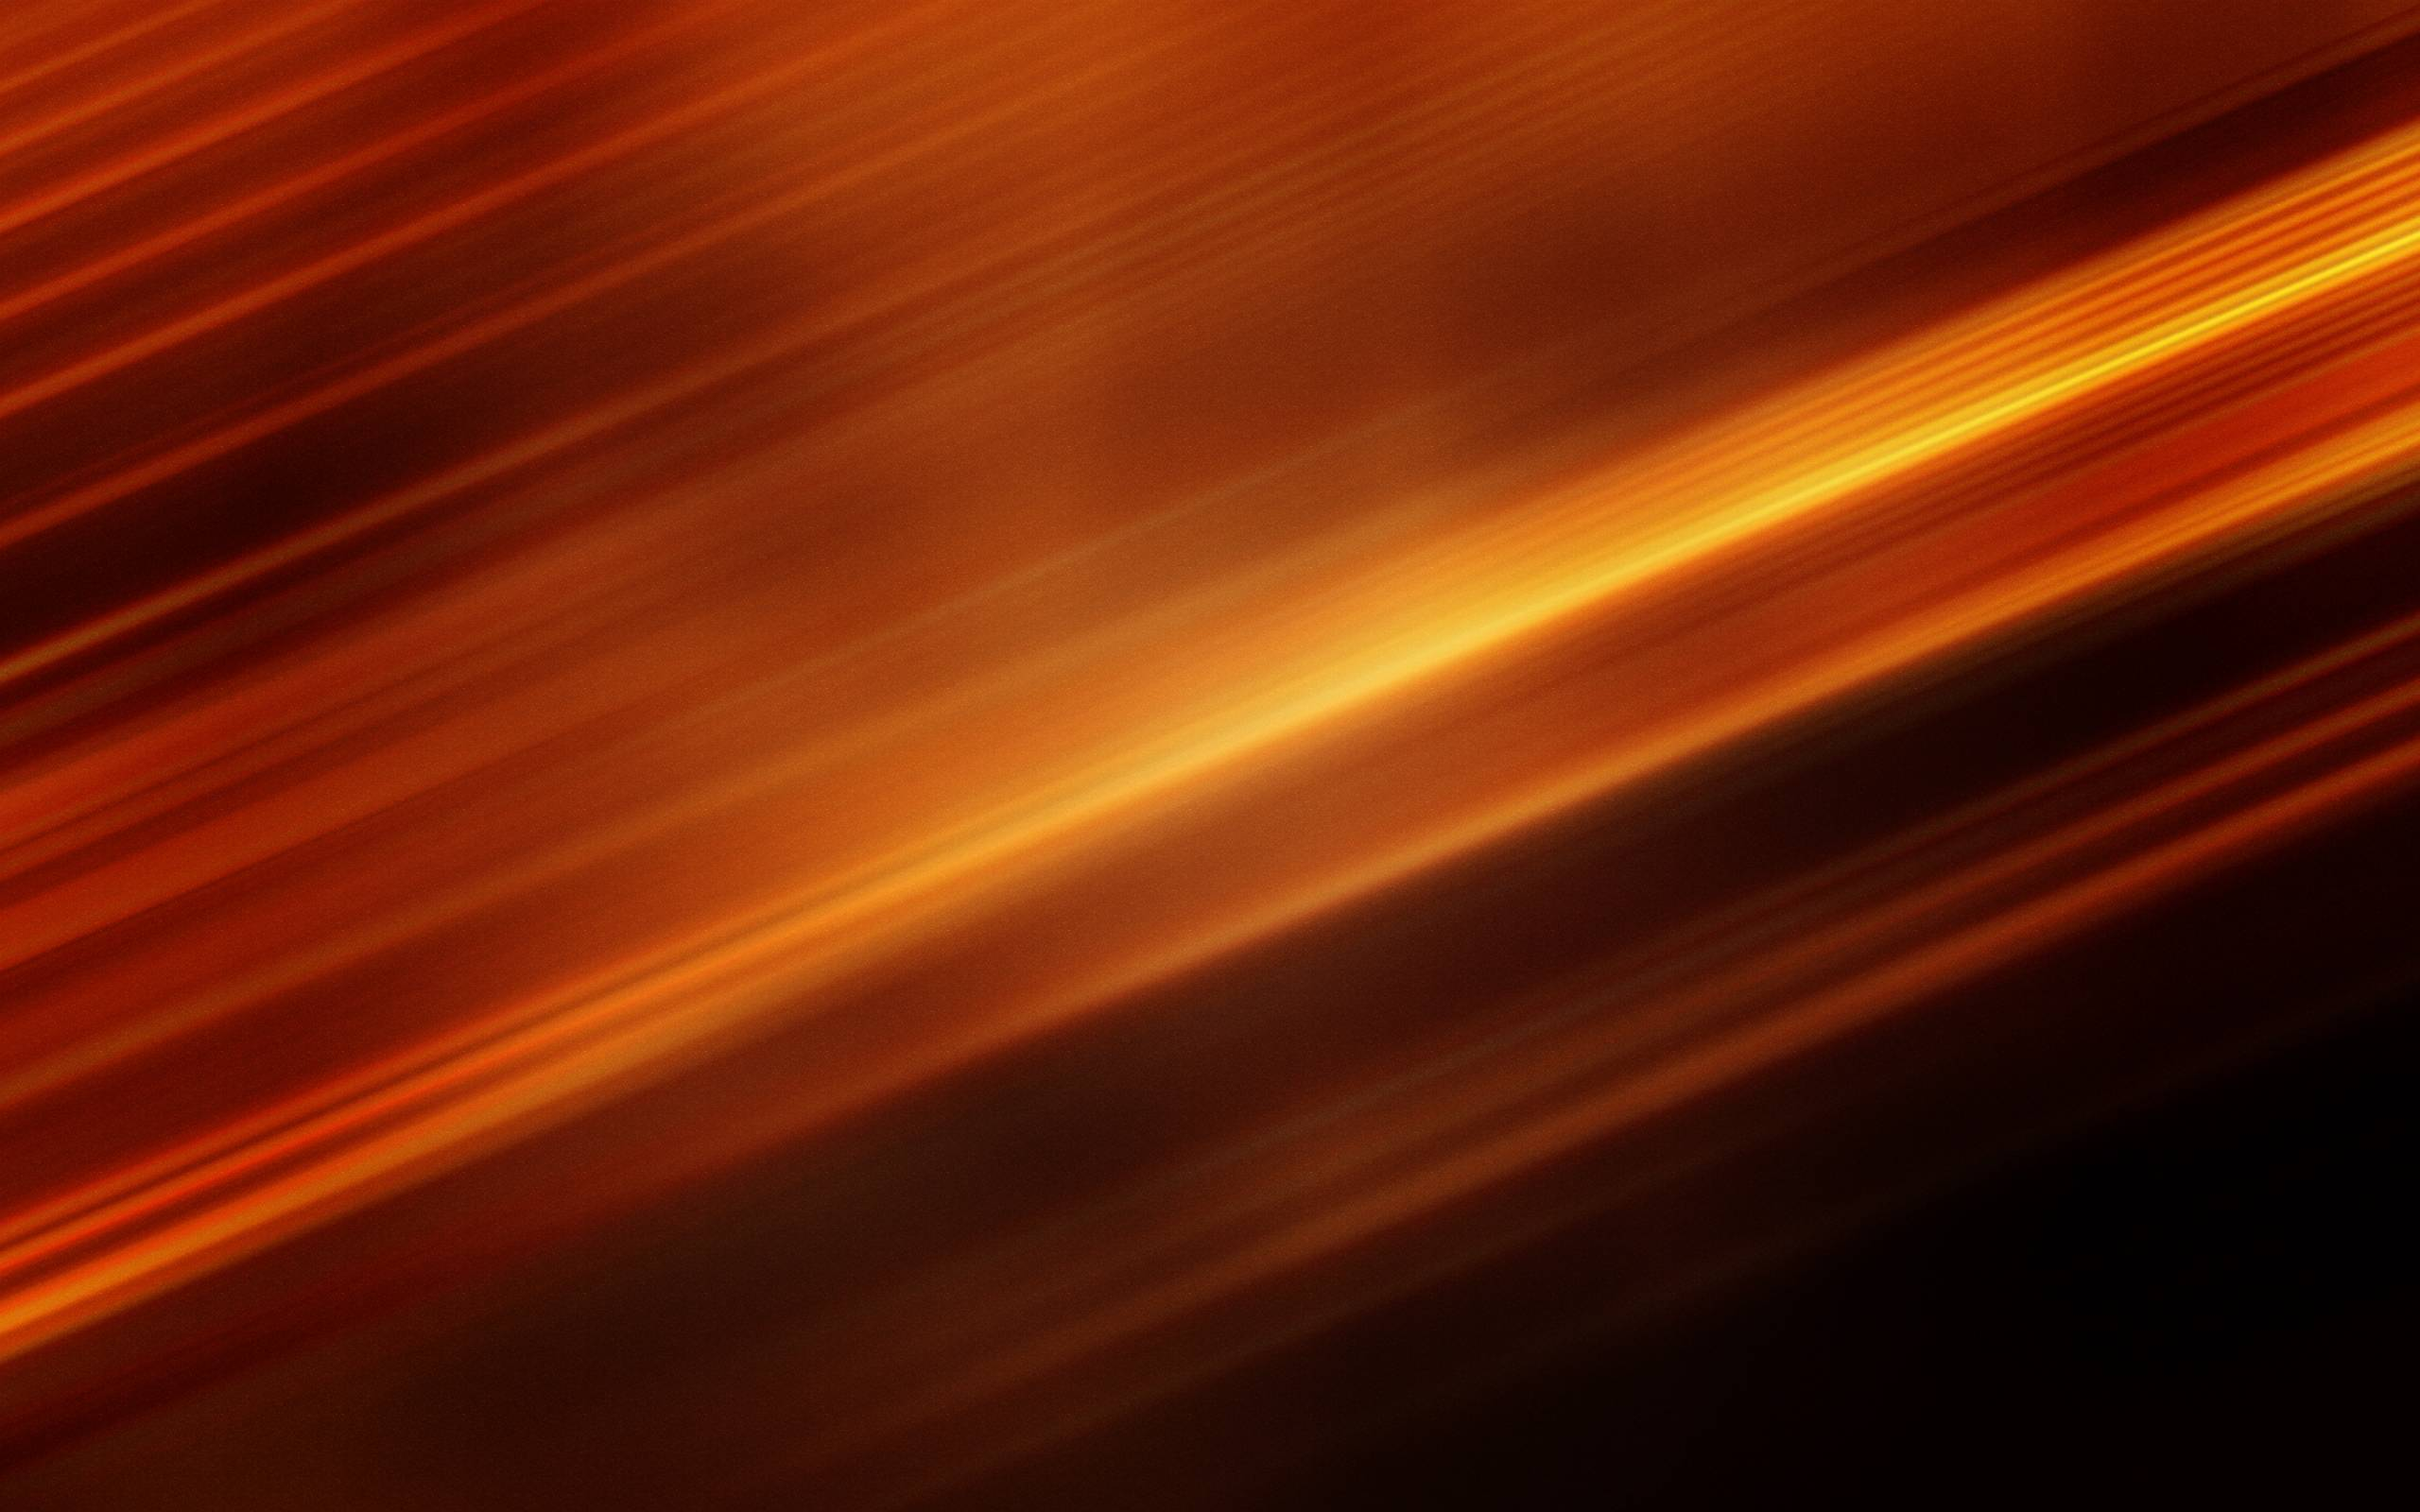 Abstract Backgrounds Wallpapers 037